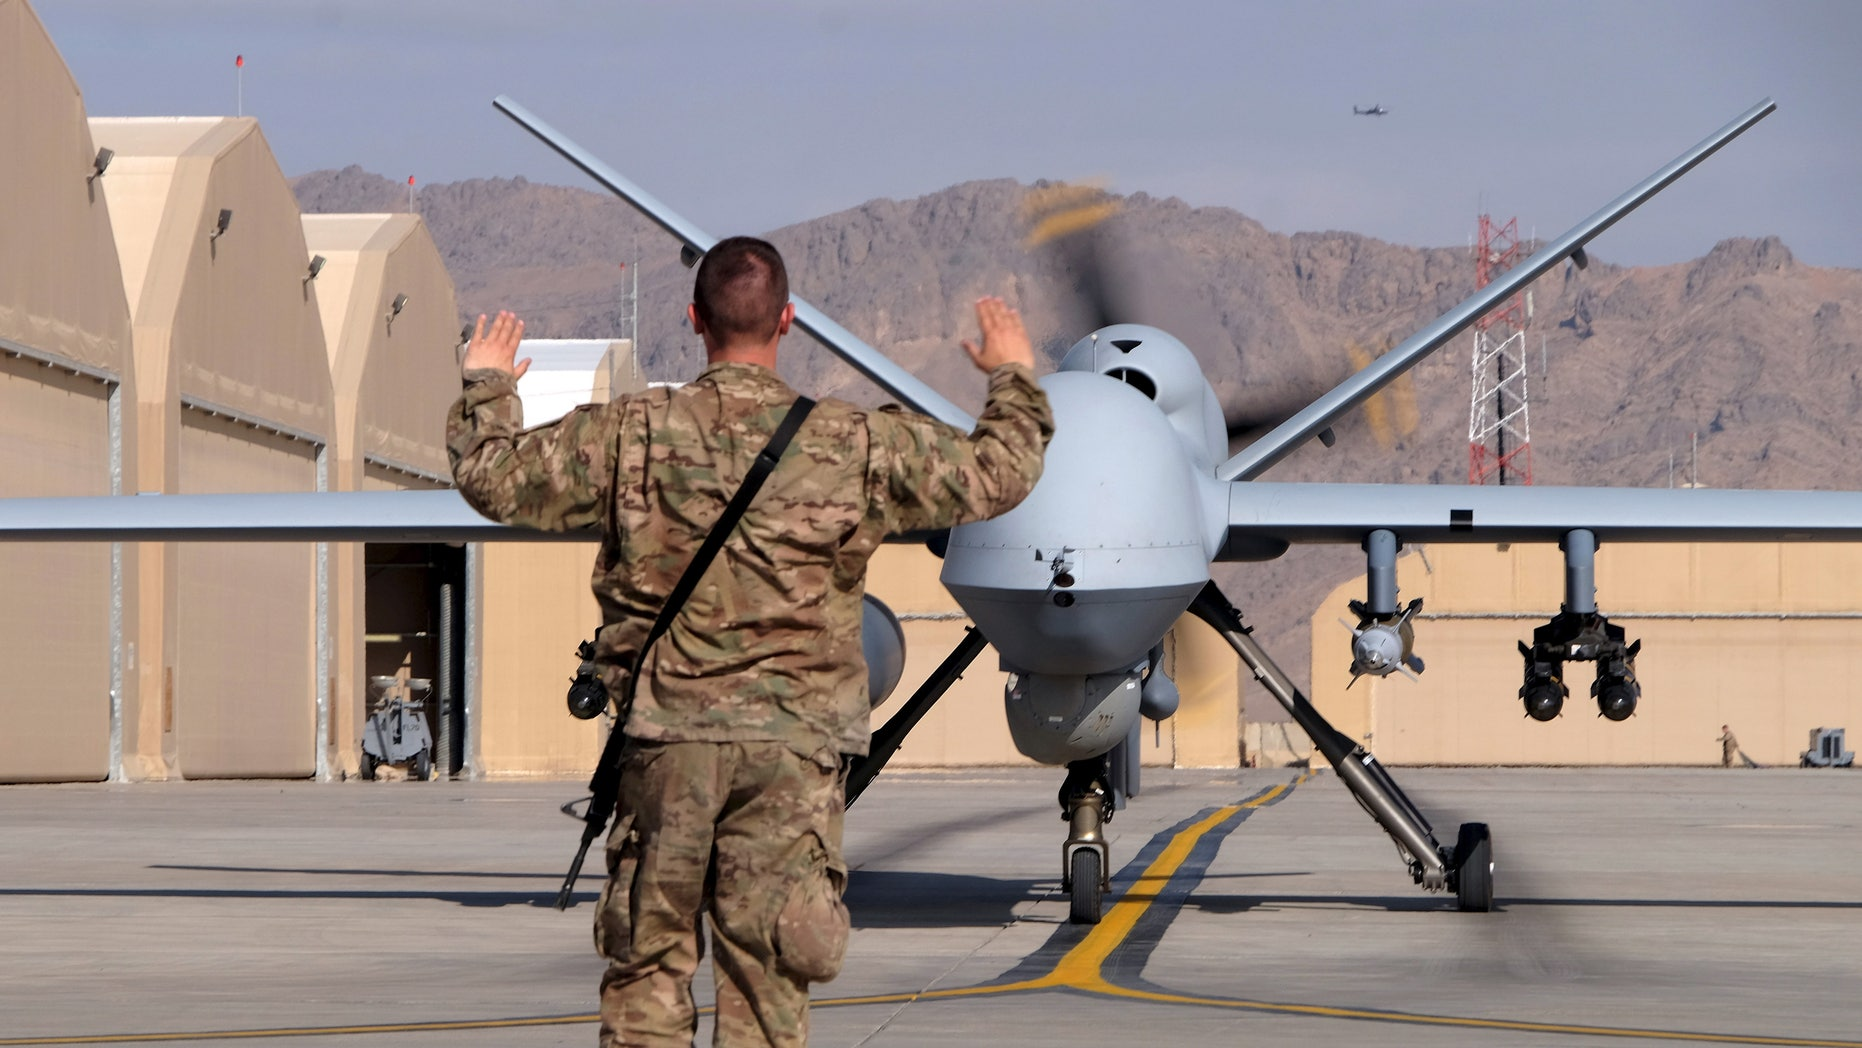 A U.S. airman guides an MQ-9 Reaper drone as it taxis to the runway at Kandahar Airfield, Afghanistan, in March.